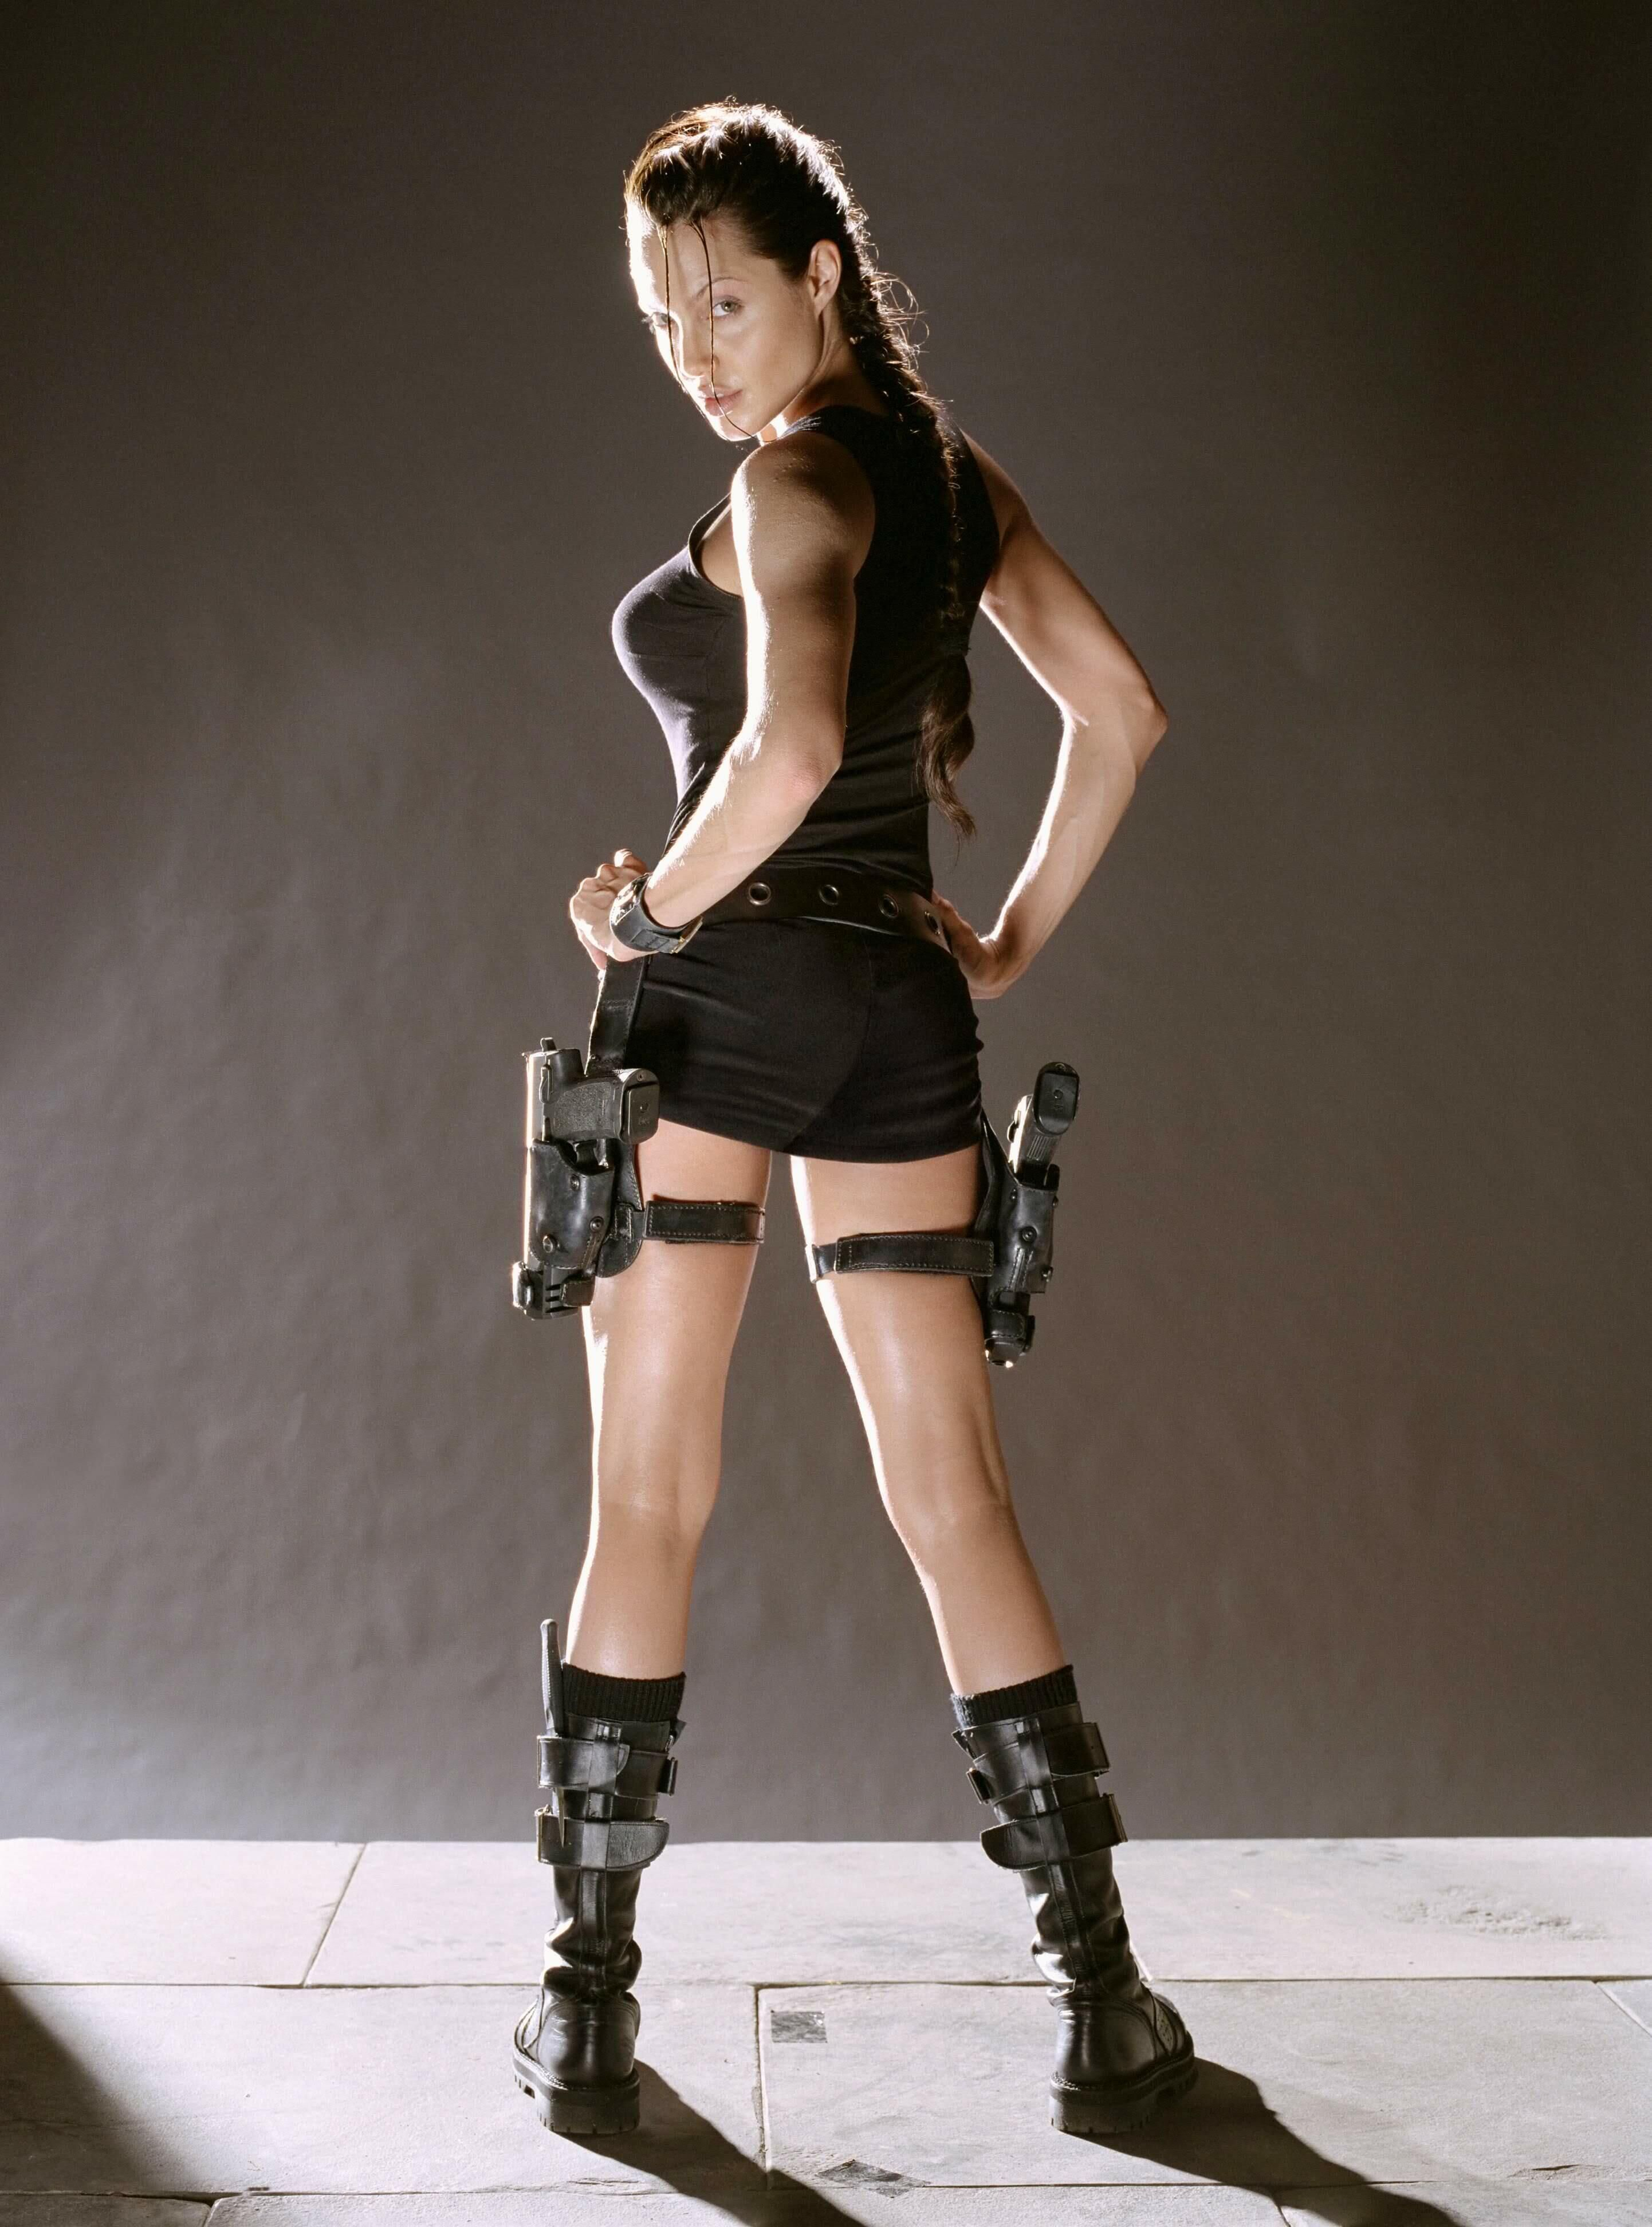 For that Angelina jolie as lara croft here against